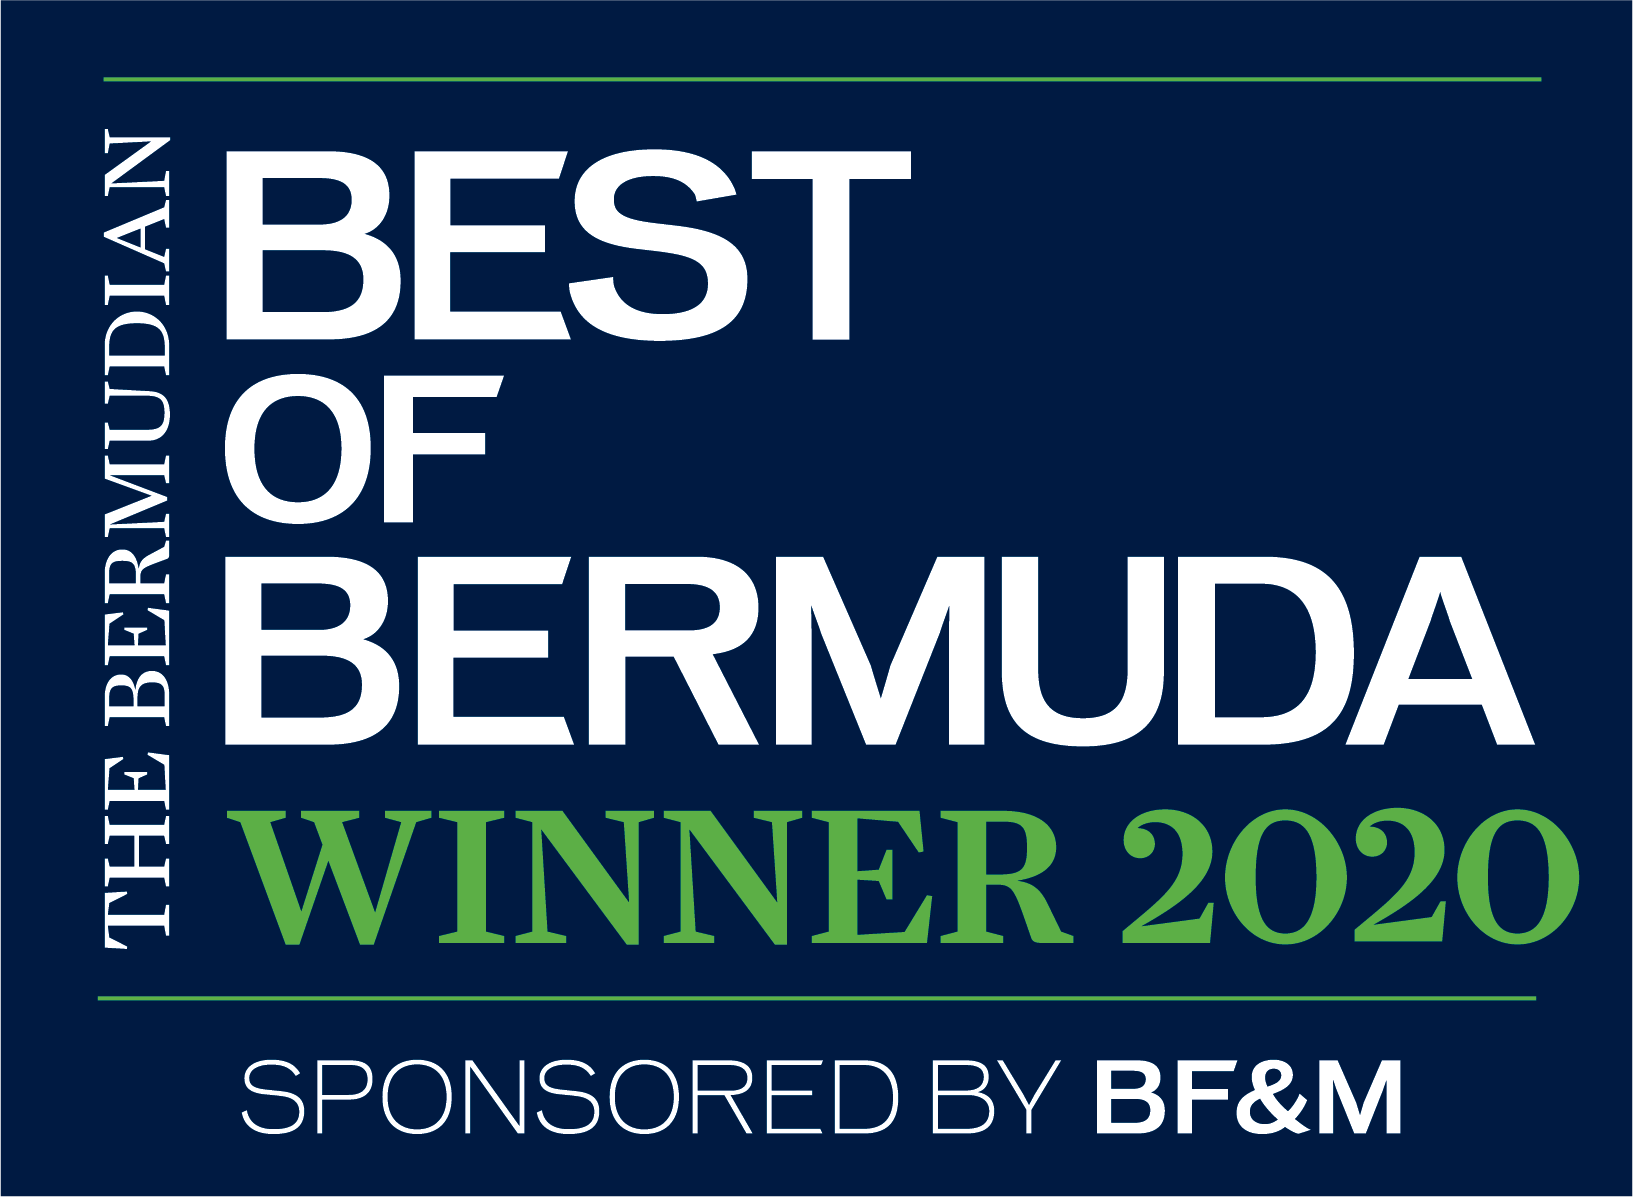 Best of Bermuda Award Winner 2020